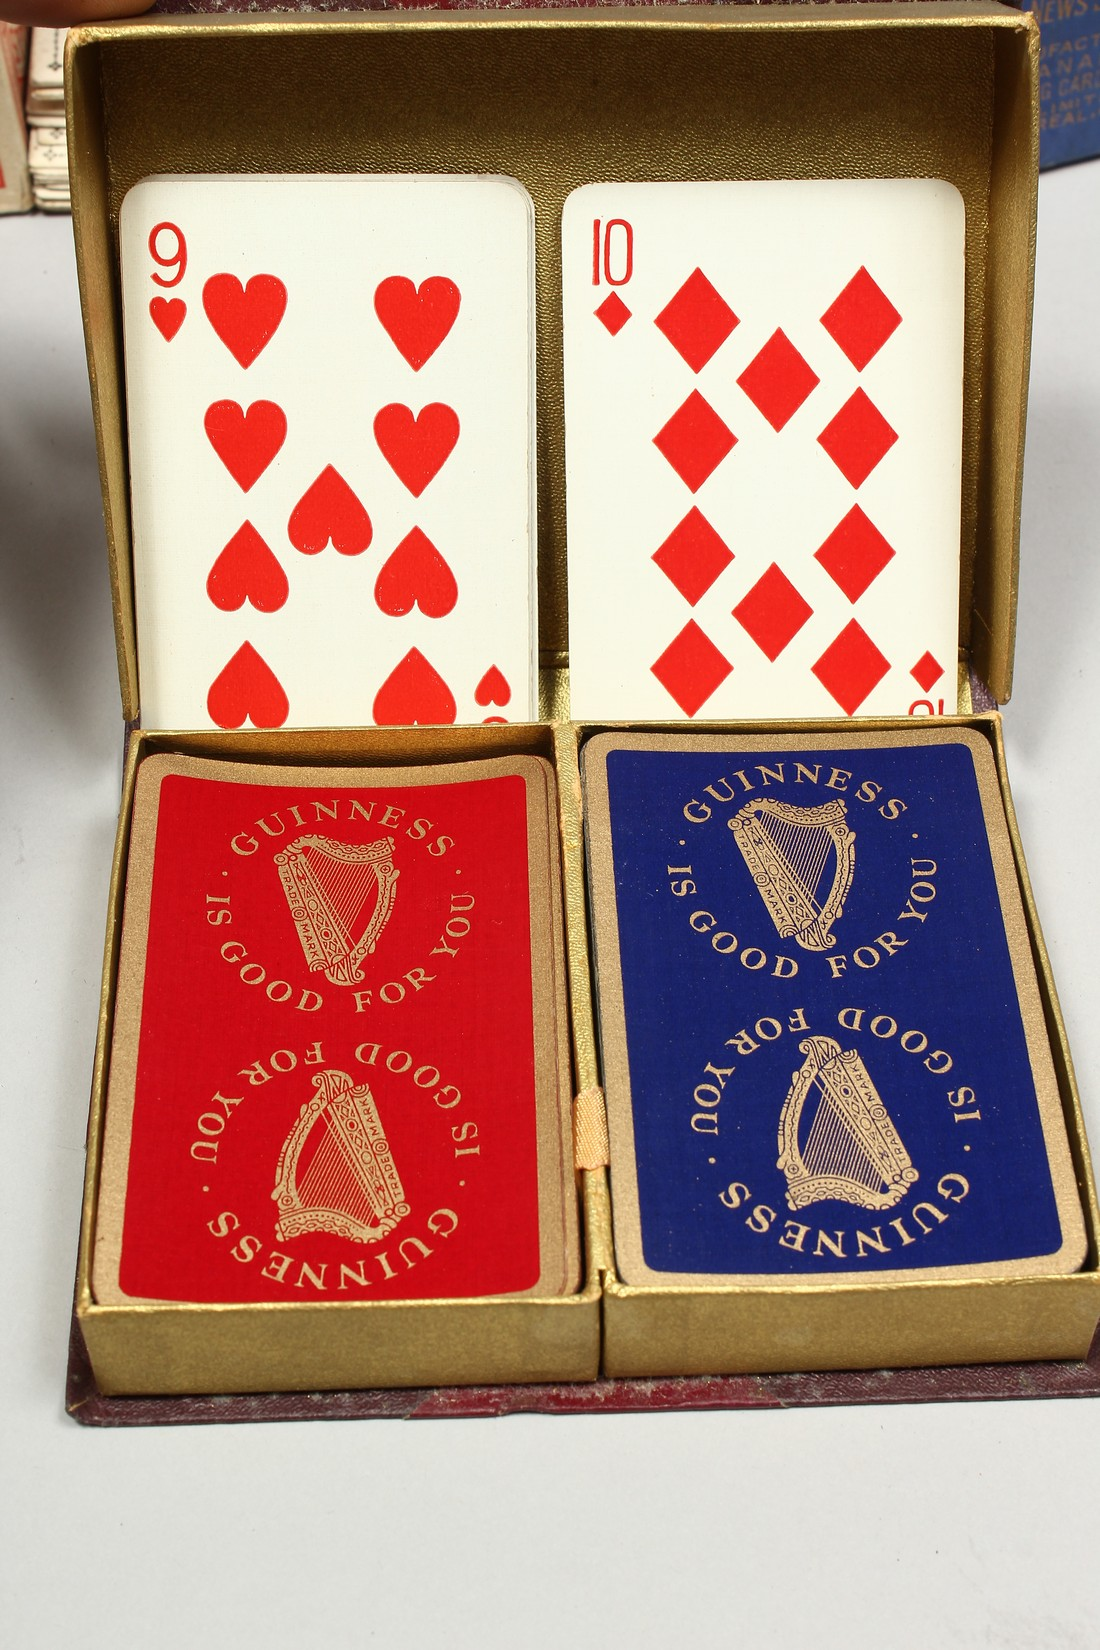 A COLLECTION OF VARIOUS PLAYING CARDS. - Image 8 of 16